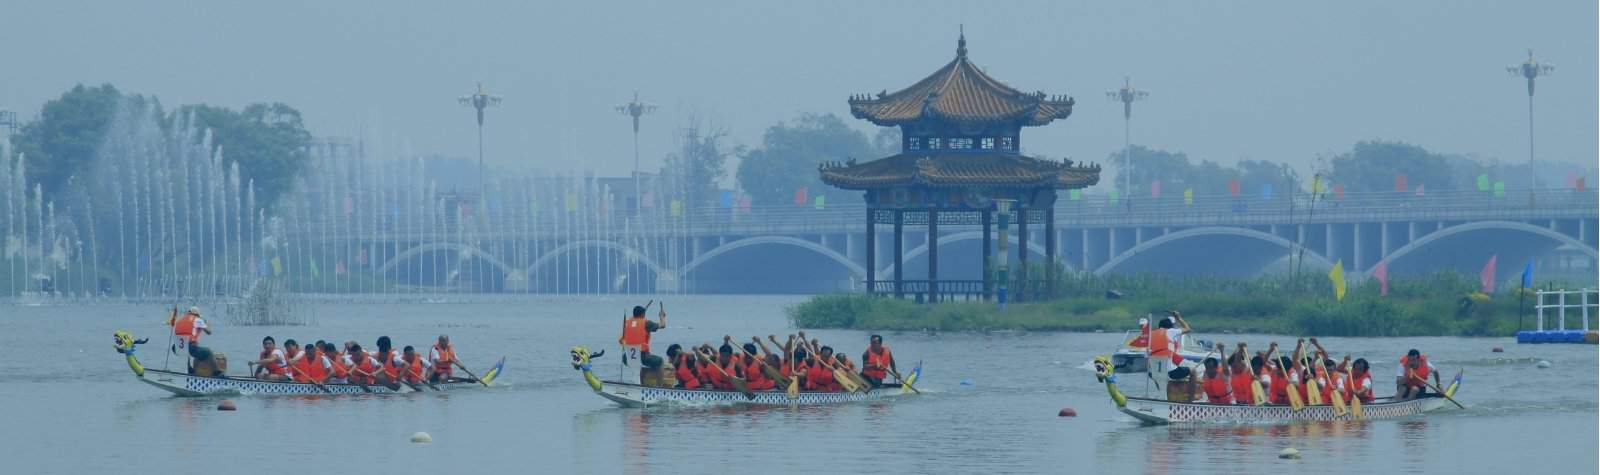 Dragon Boat Festival- Chinese Culture & Tradition 2020